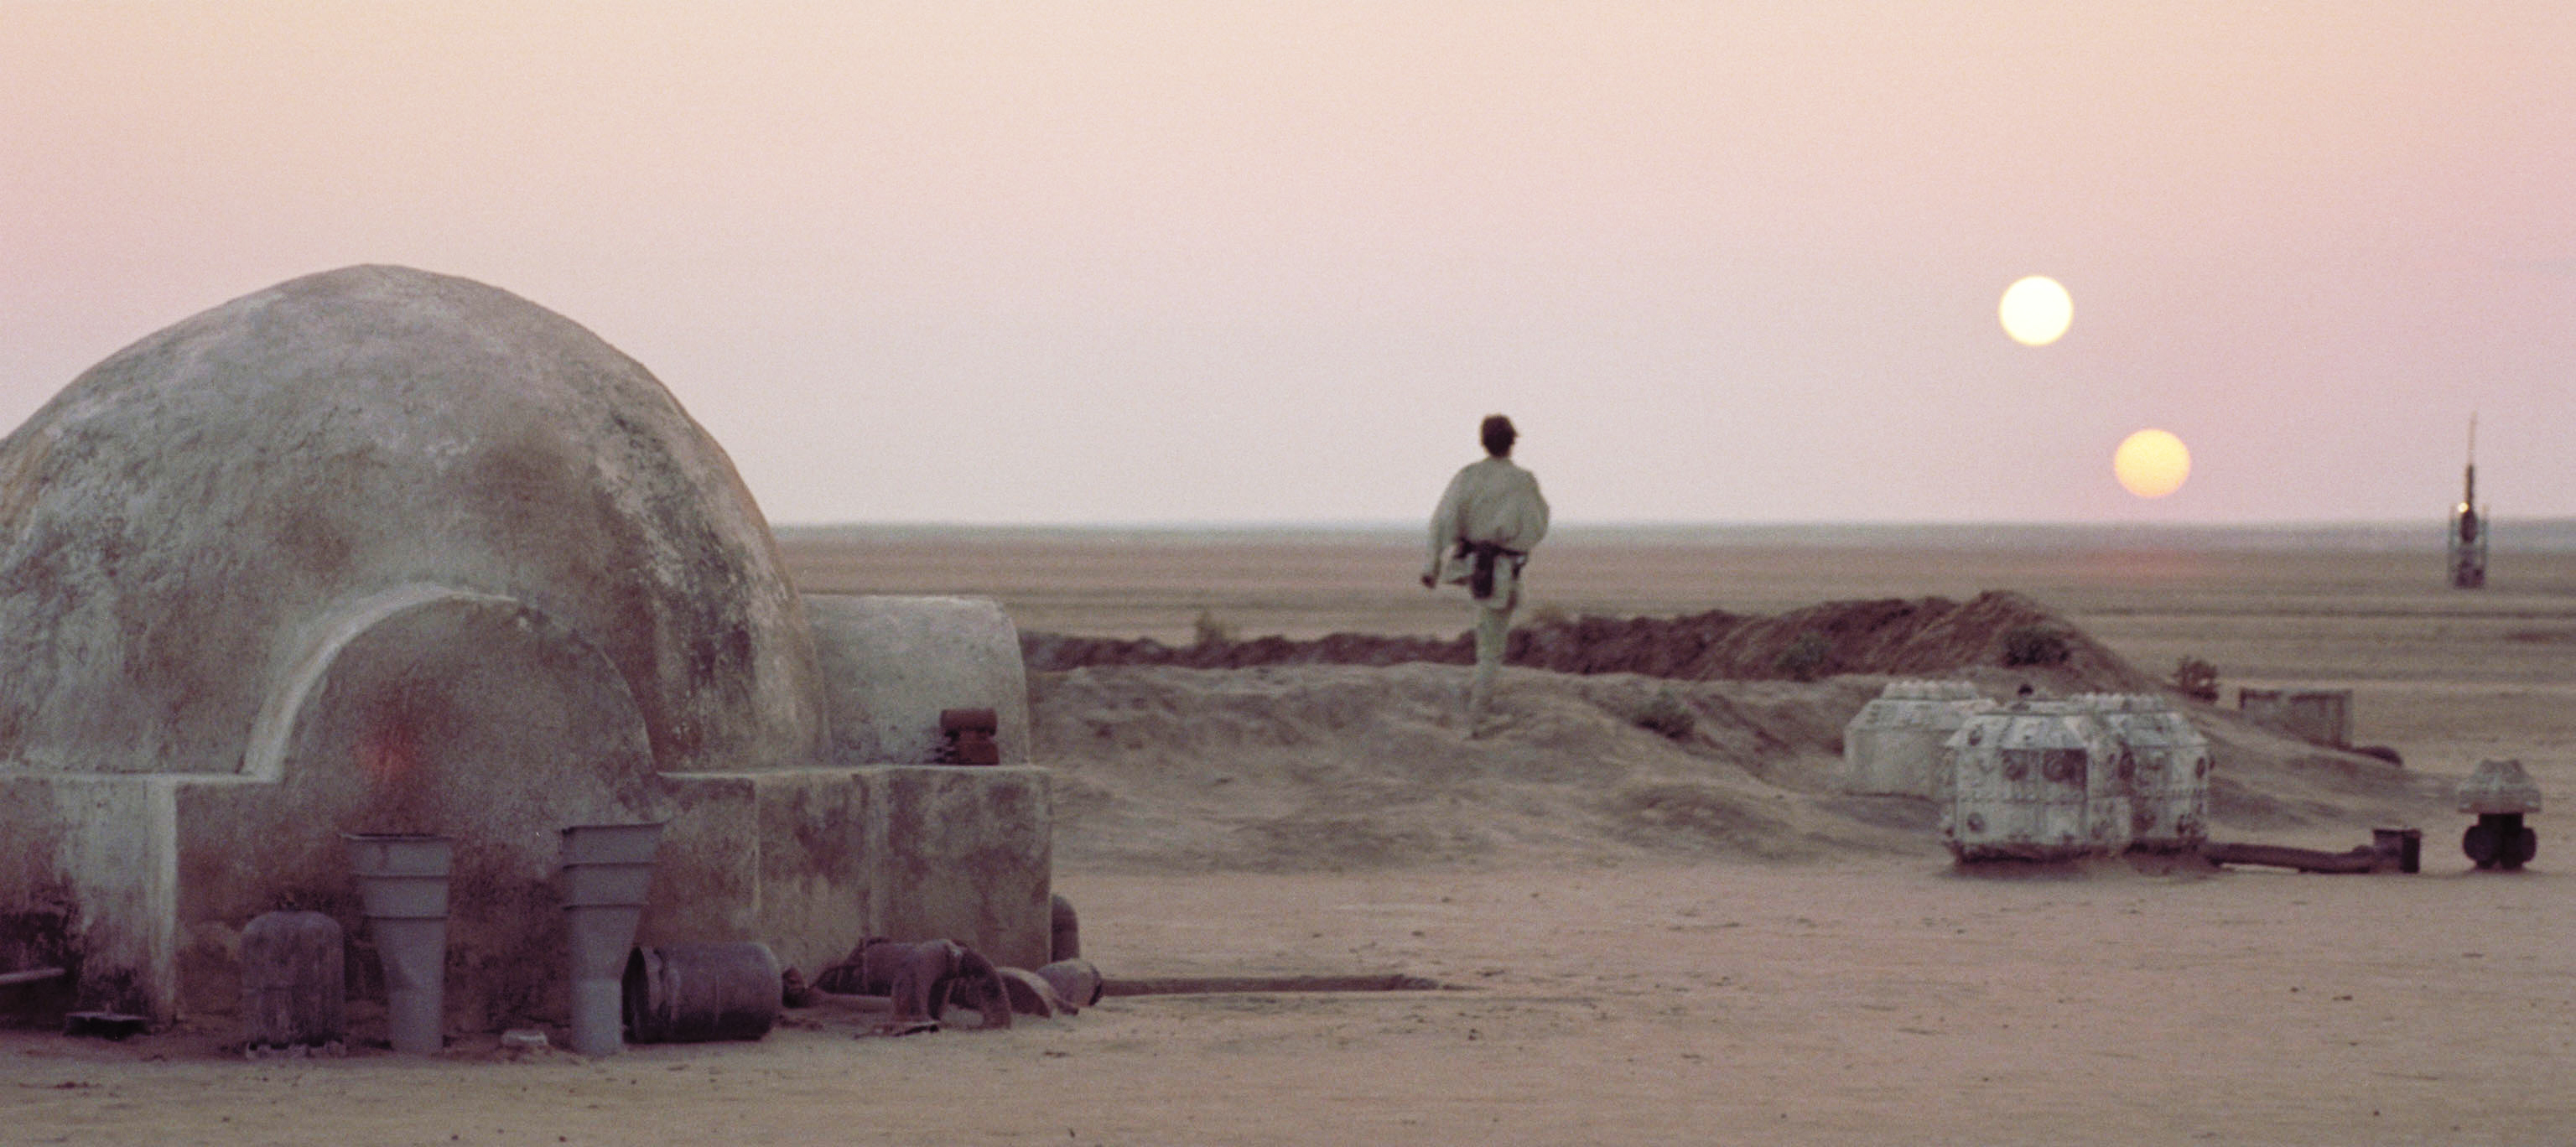 The two suns of Tatooine.